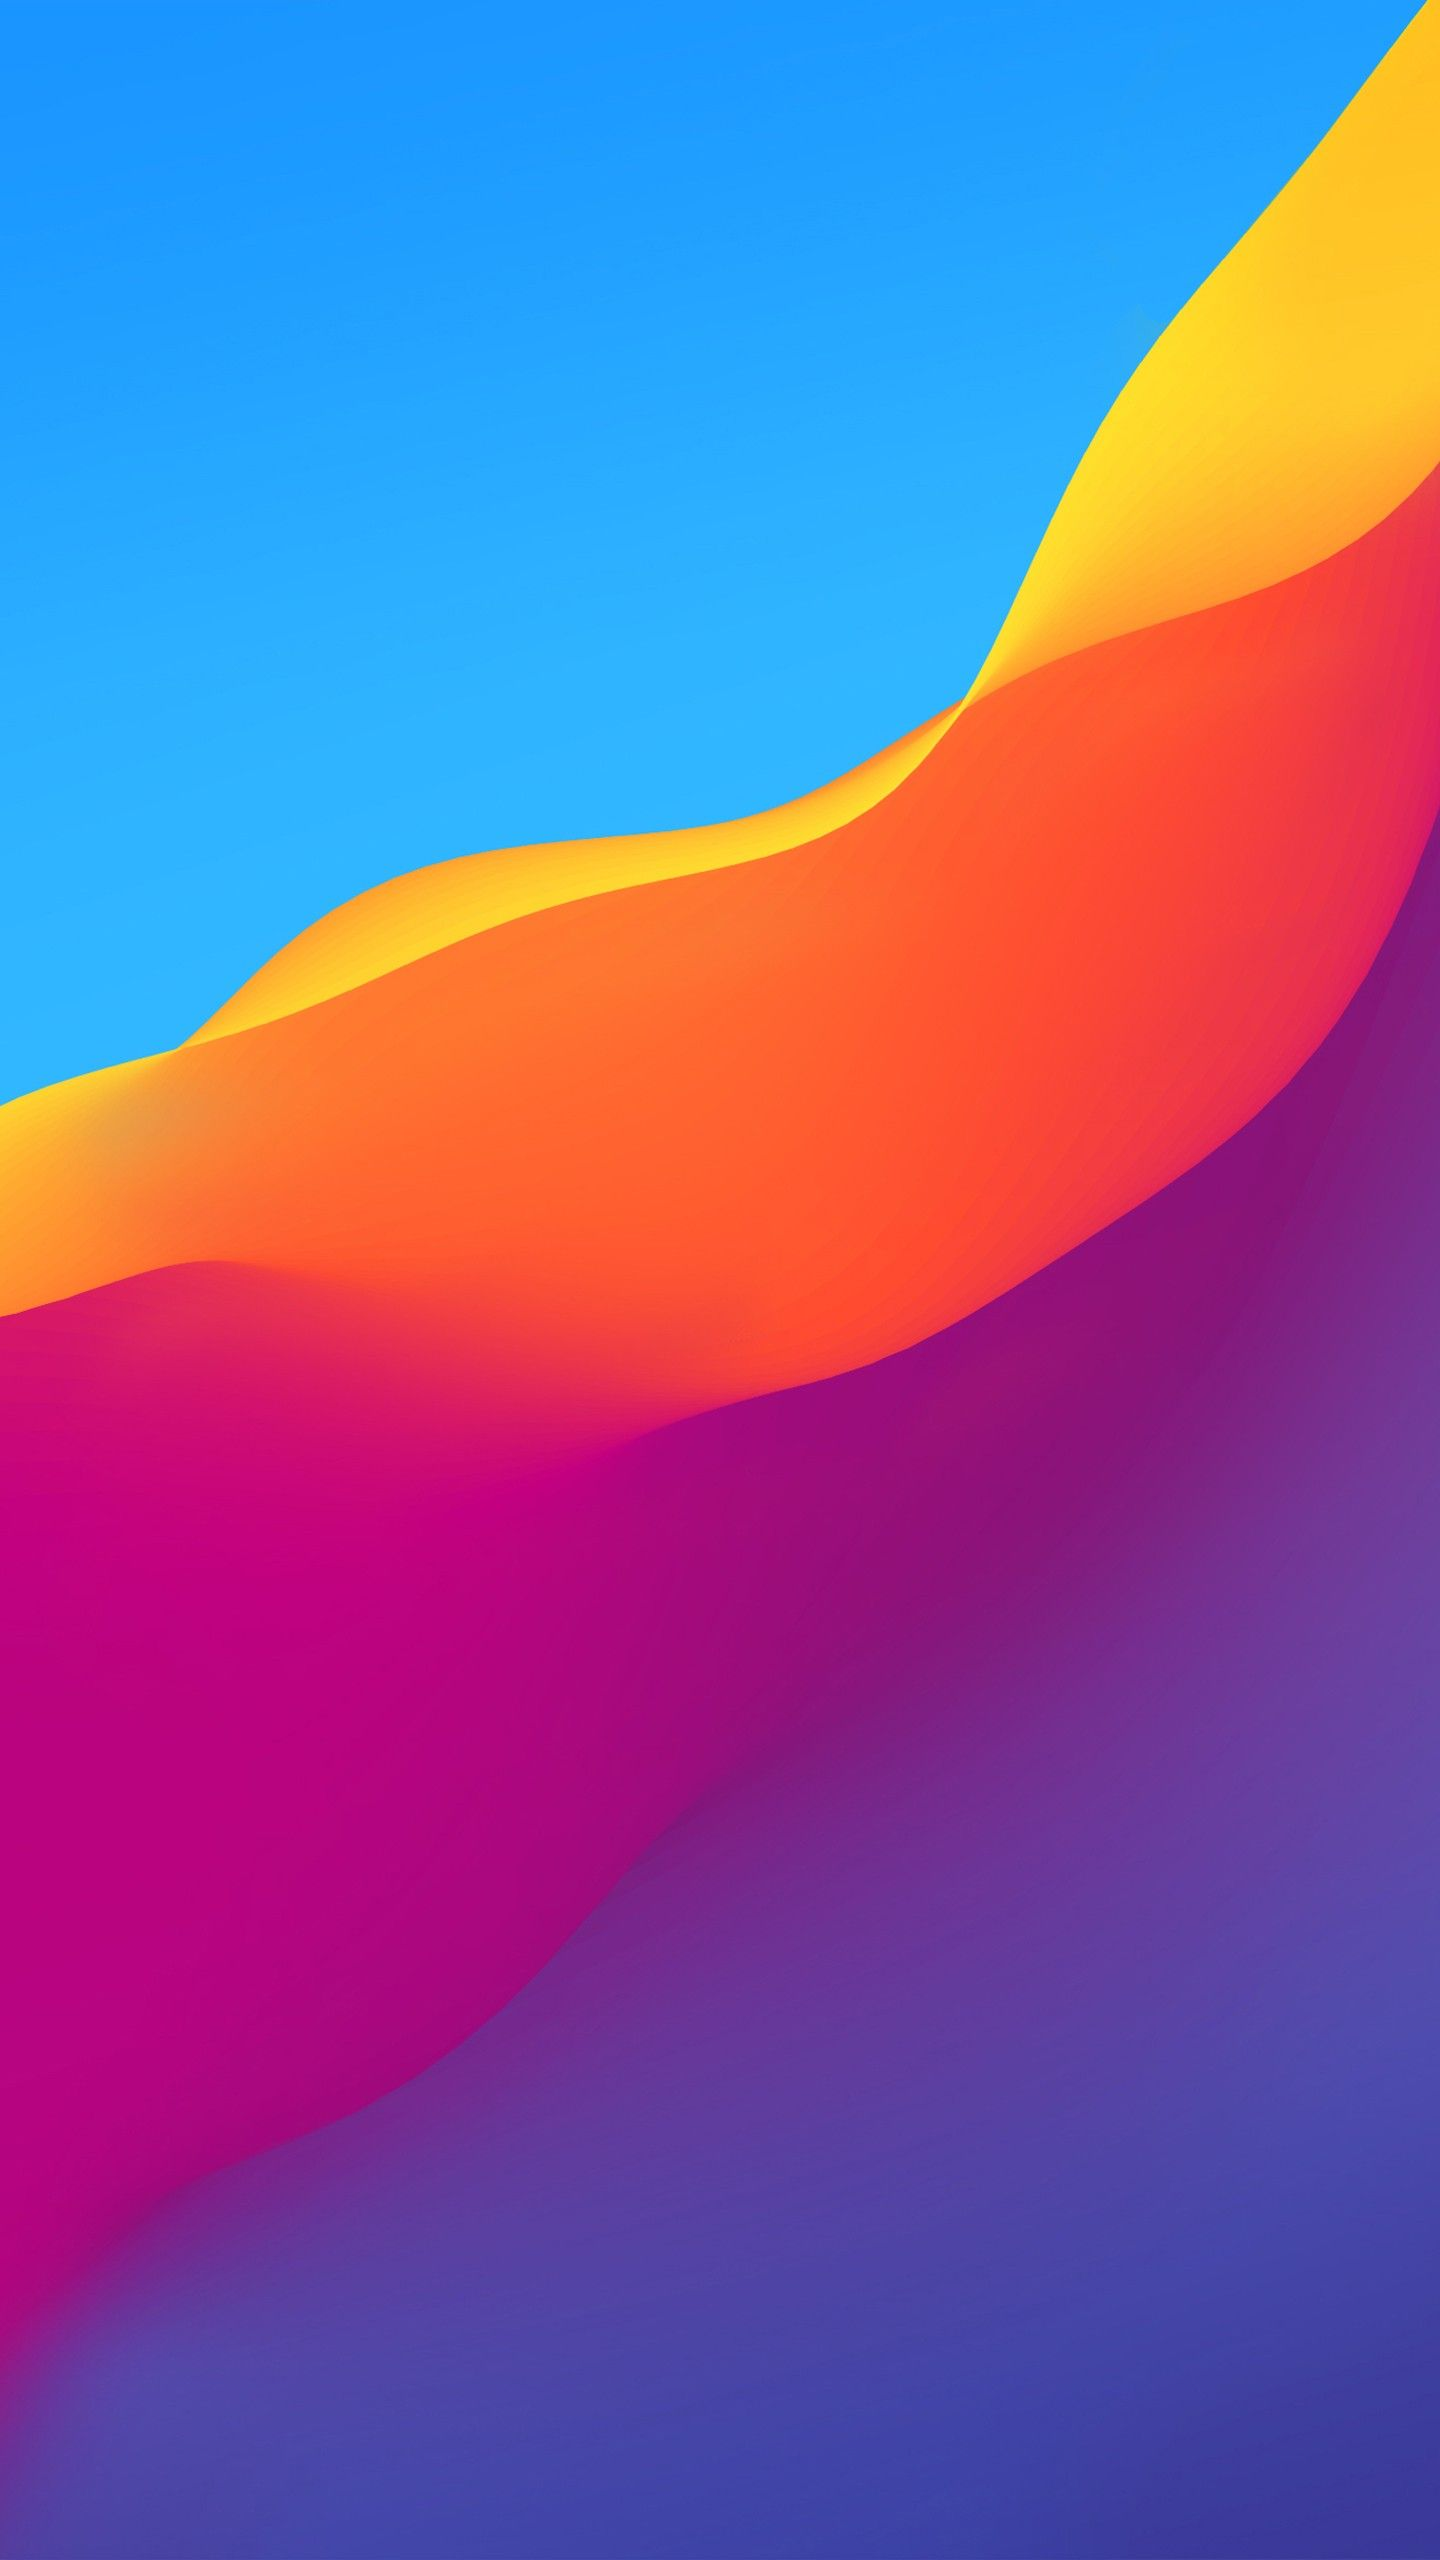 Abstract Colorful Gradient Waves Honor Play Stock Wallpapers Stock Wallpaper Xiaomi Wallpapers Minimalist Wallpaper